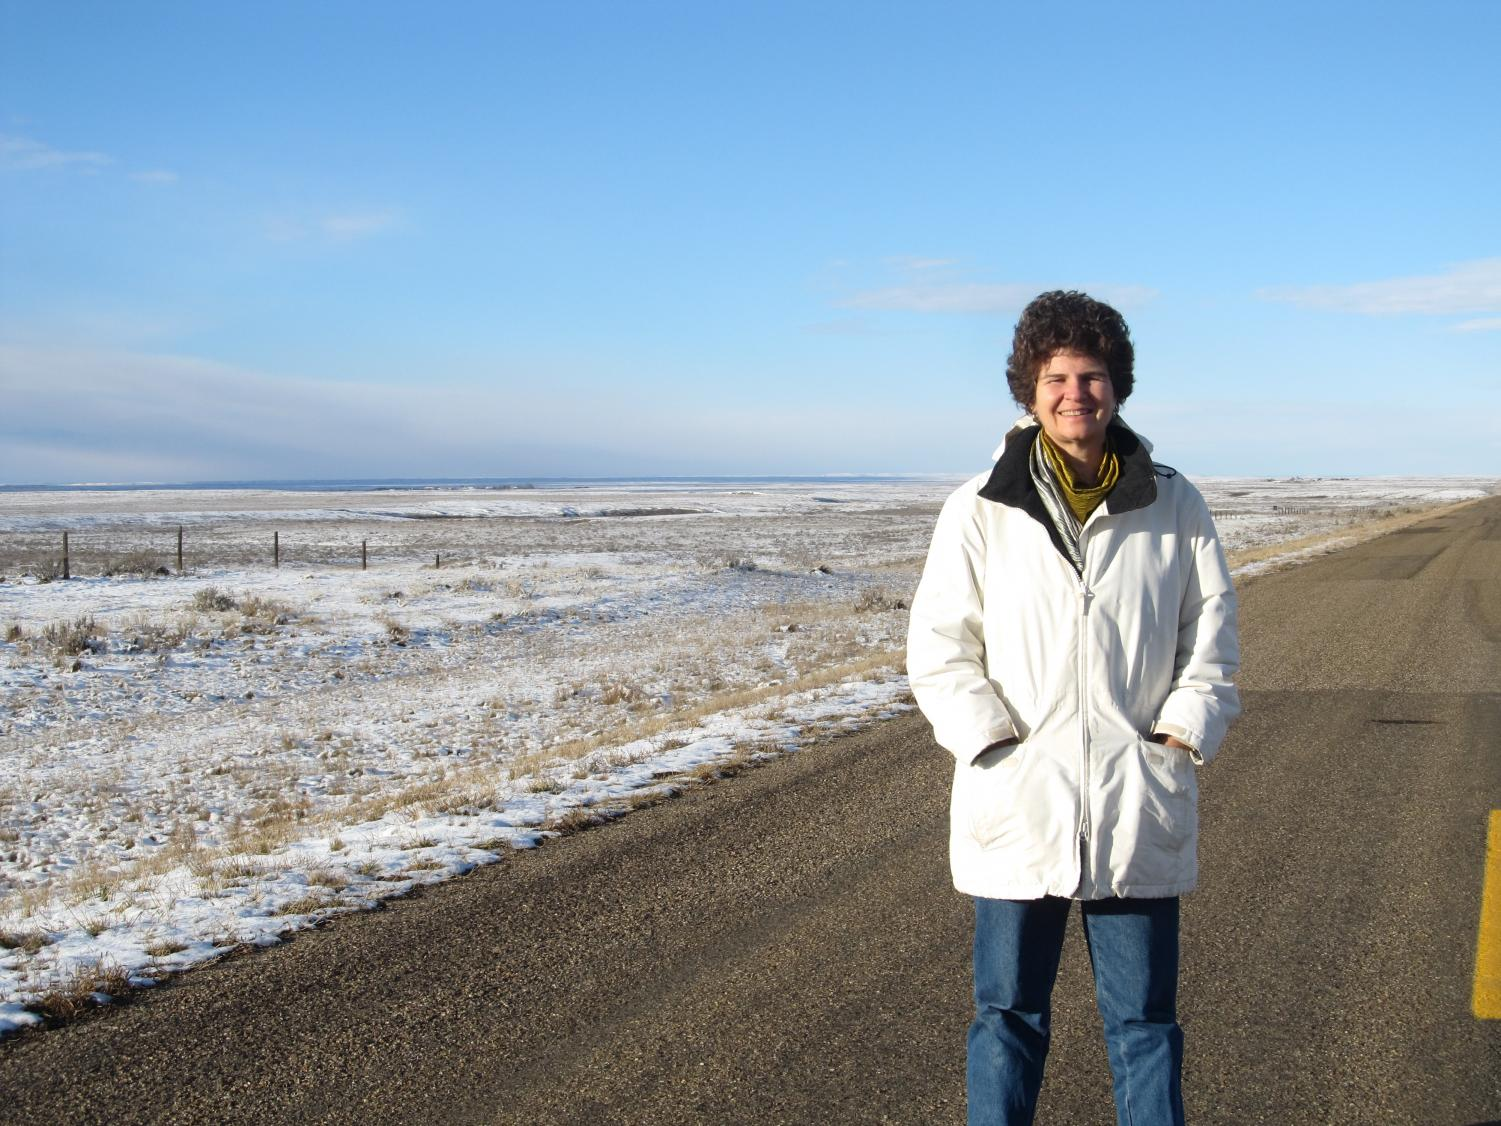 Professor Kate Bjork took various research trips, such as to Fort Assiniboine and Fort Walsh along the Canadian border.